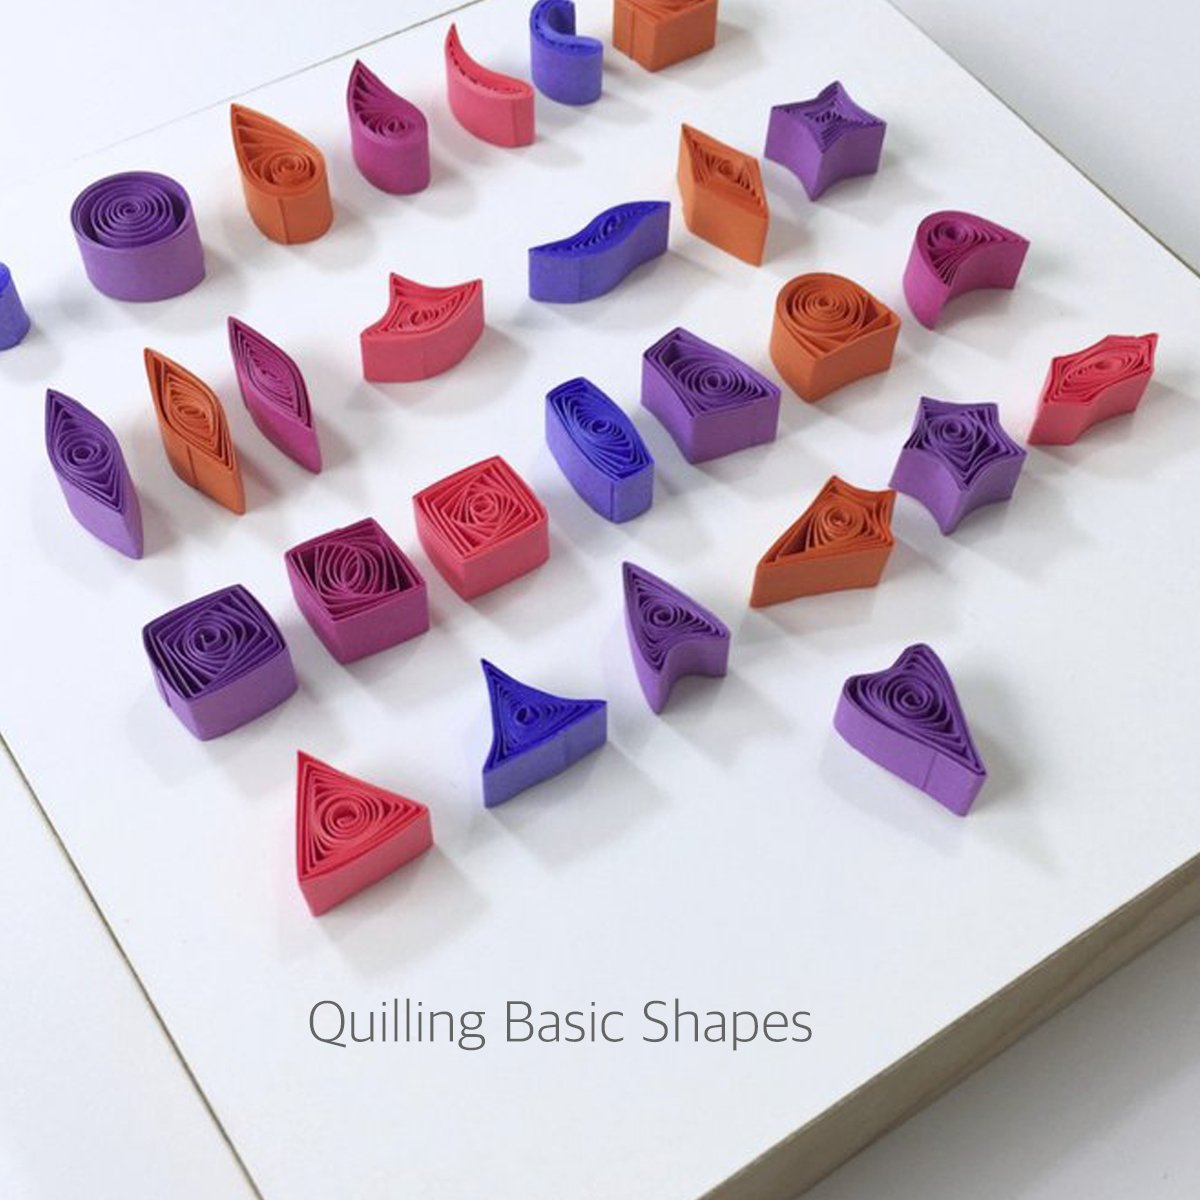 Lantee Quilling Supplies - 20 Sets of Quilling Paper Kits Include 8 Pack of 3mm 960 Quilling Paper Strips and 12 Quilling Tools by Lantee (Image #7)